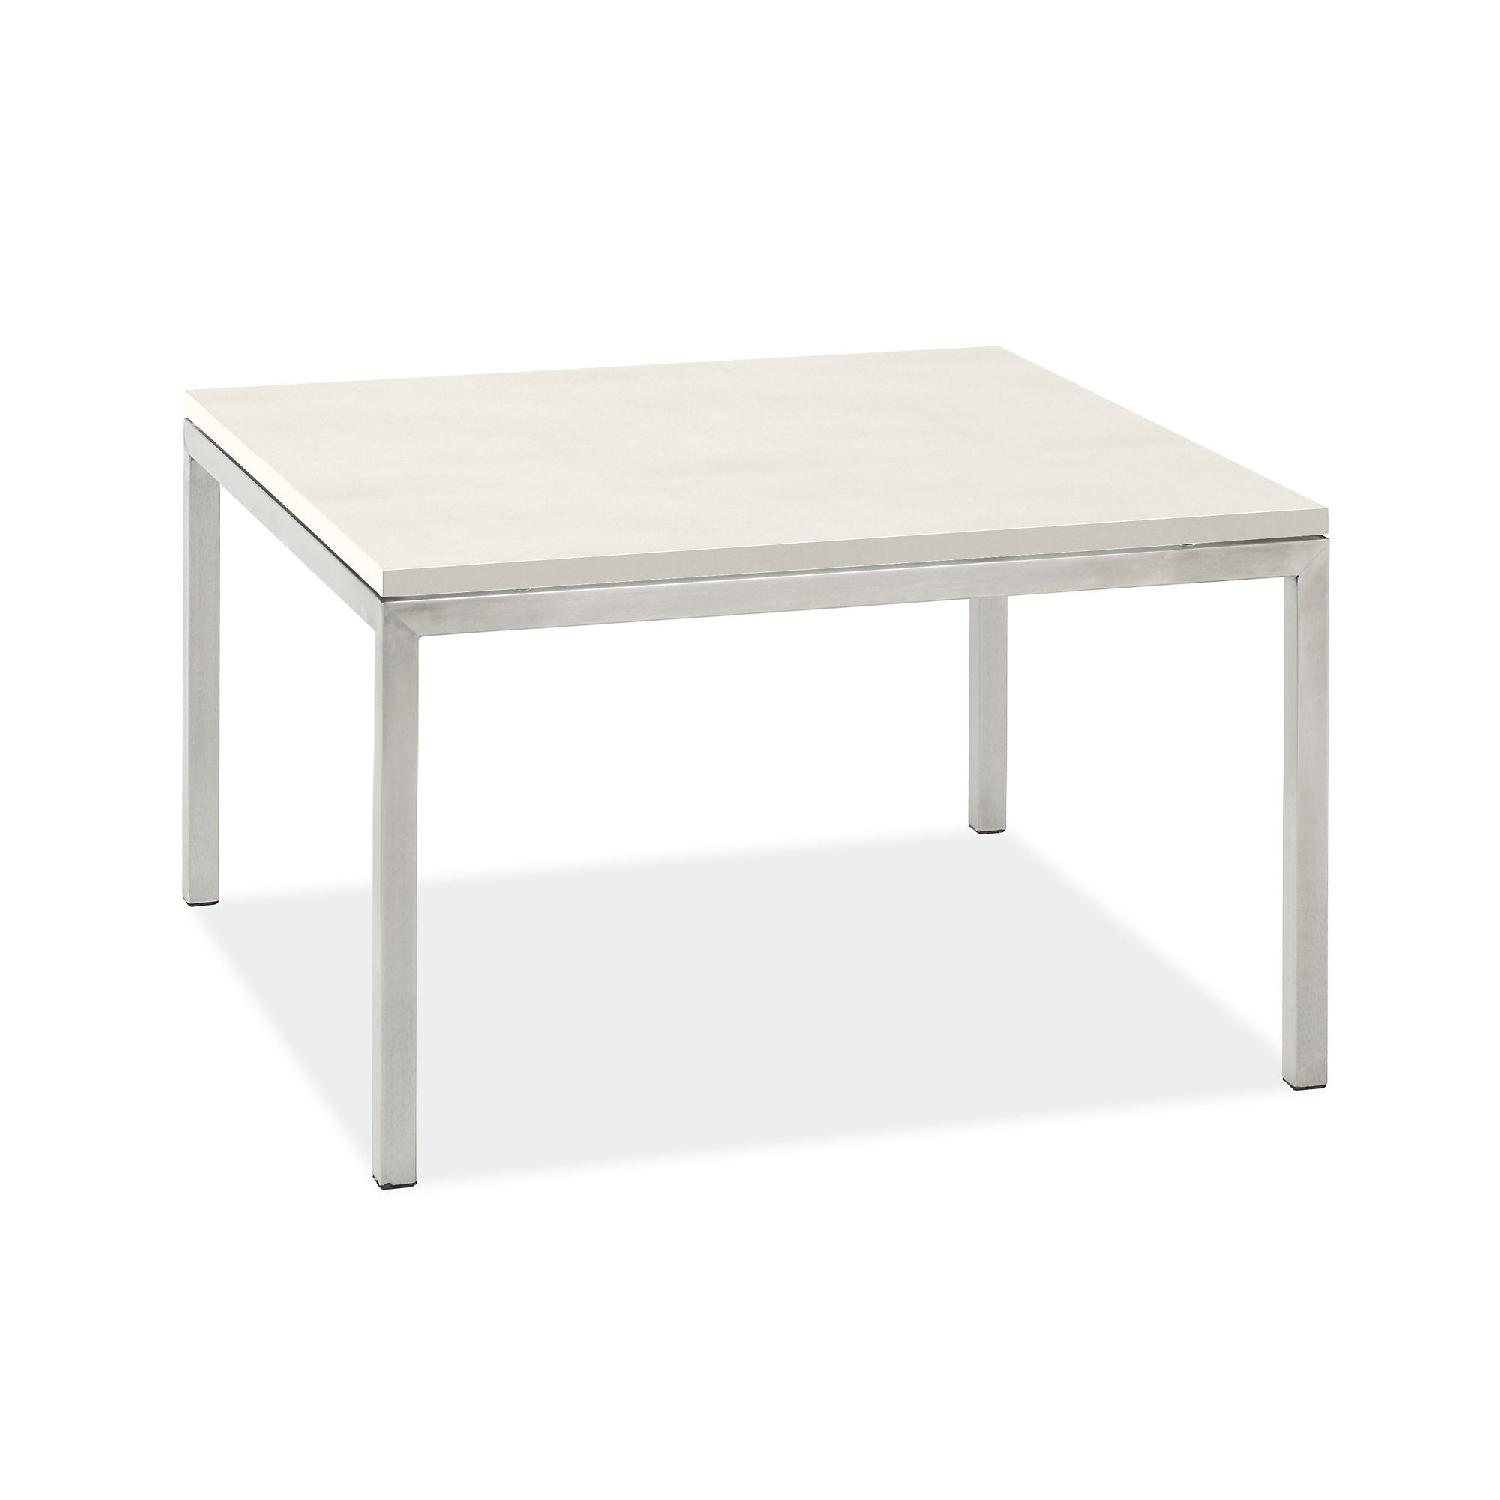 Room & Board Quartz Stainless Steel Coffee Table